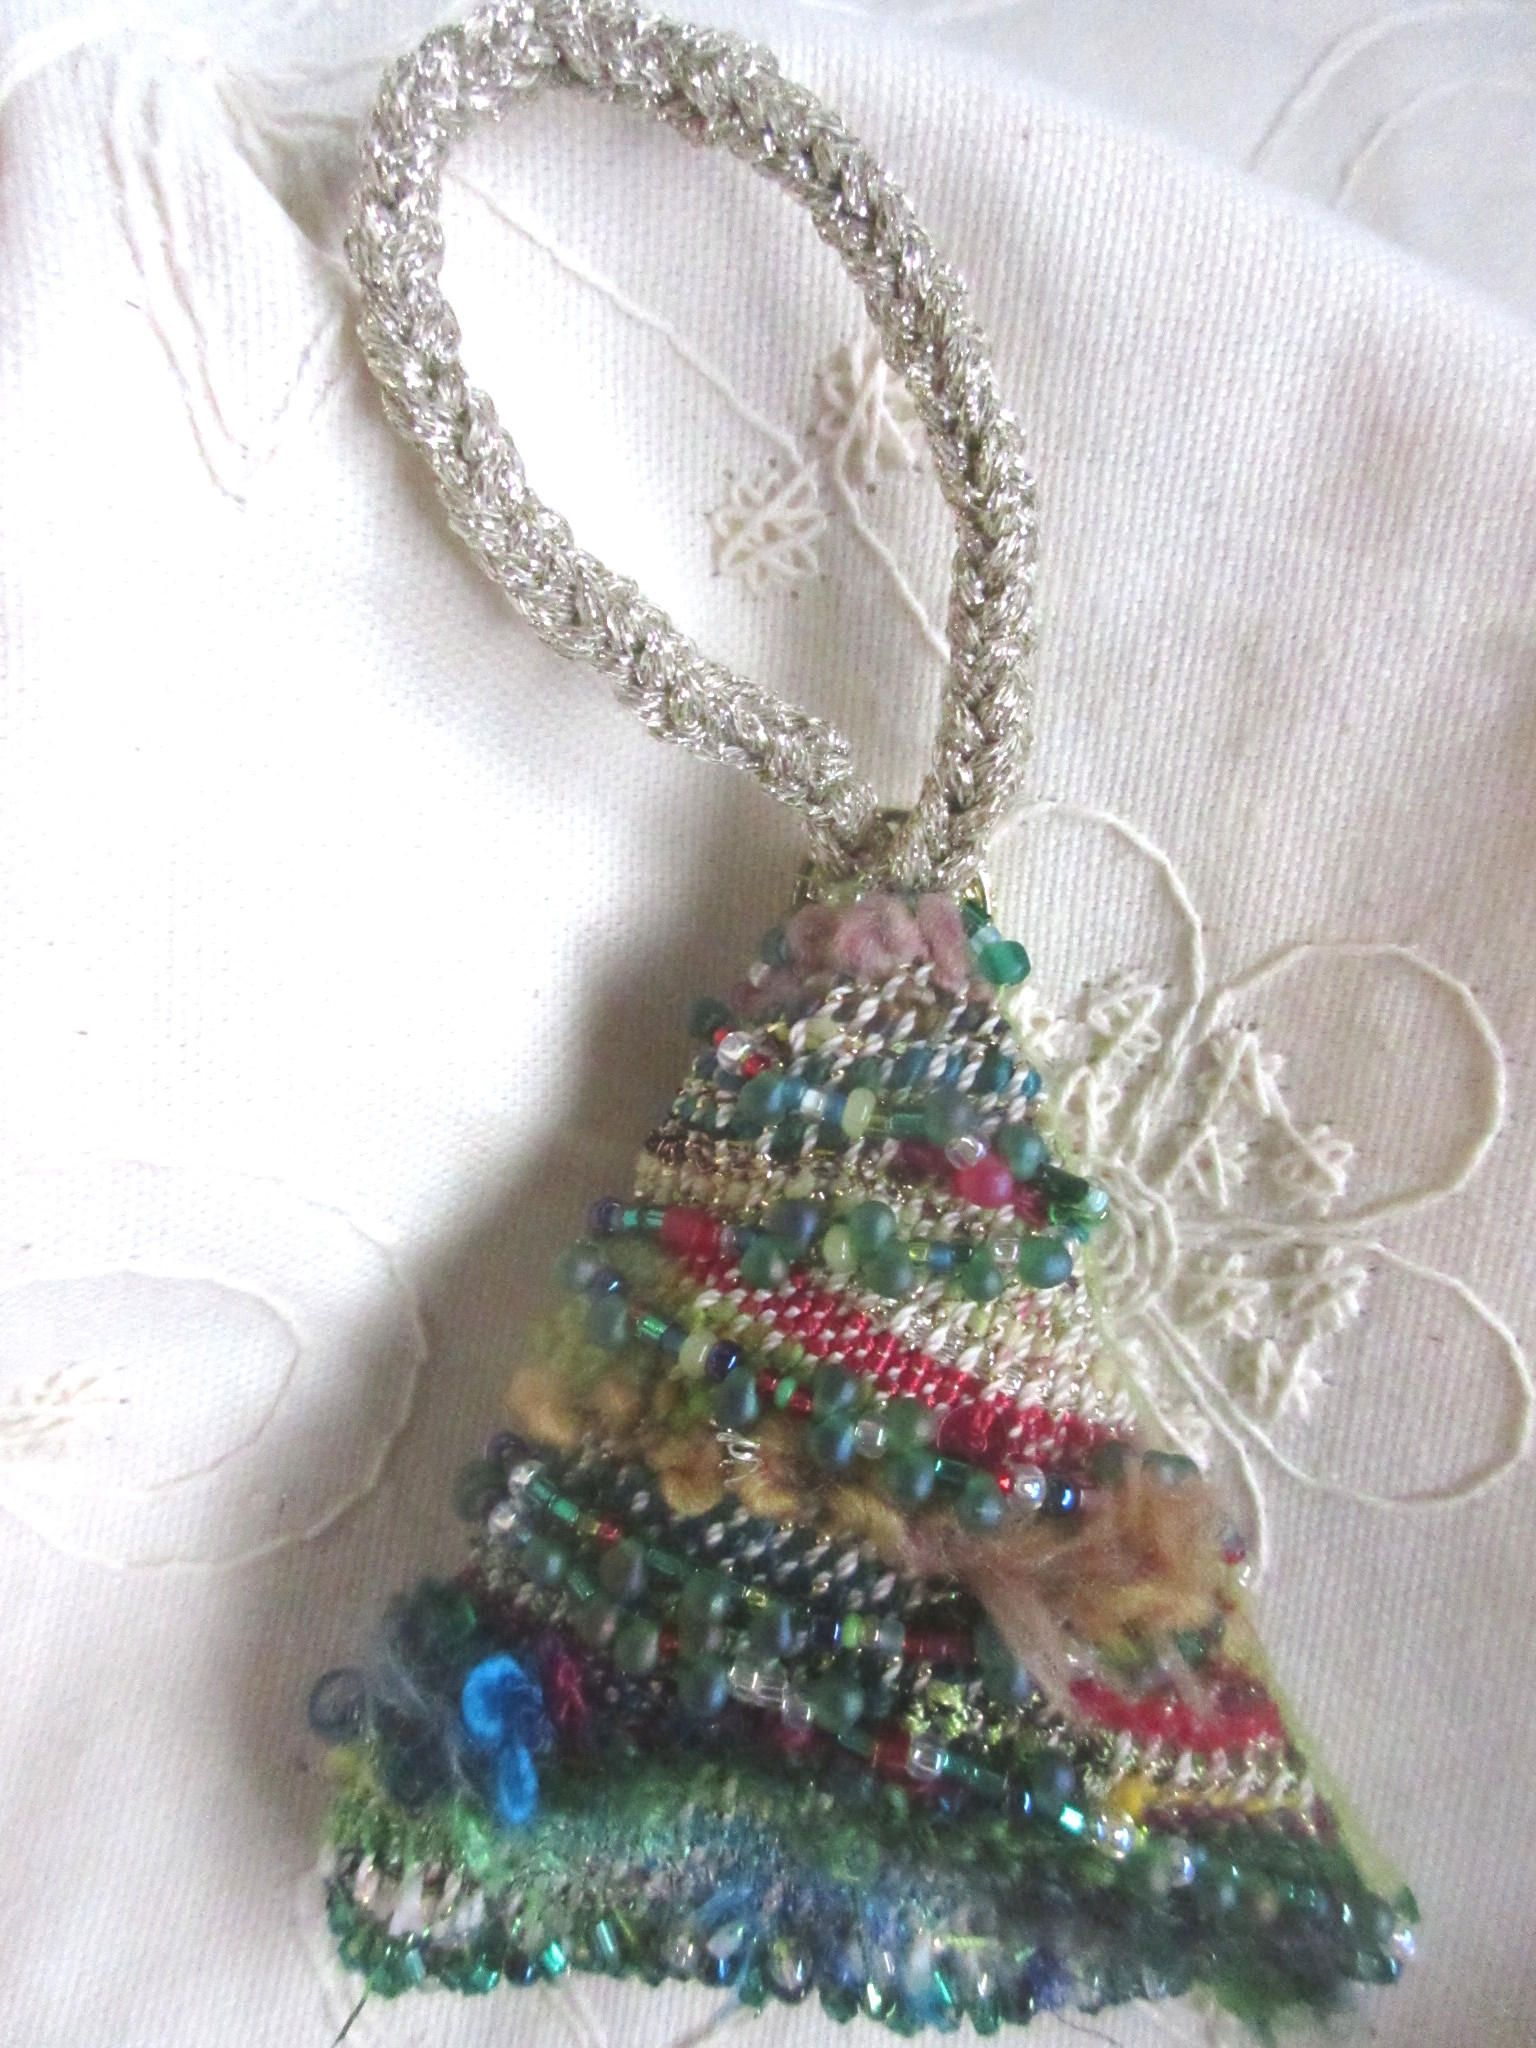 Hand Woven Christmas Tree Ornament with unique fuzzy yarns and beads